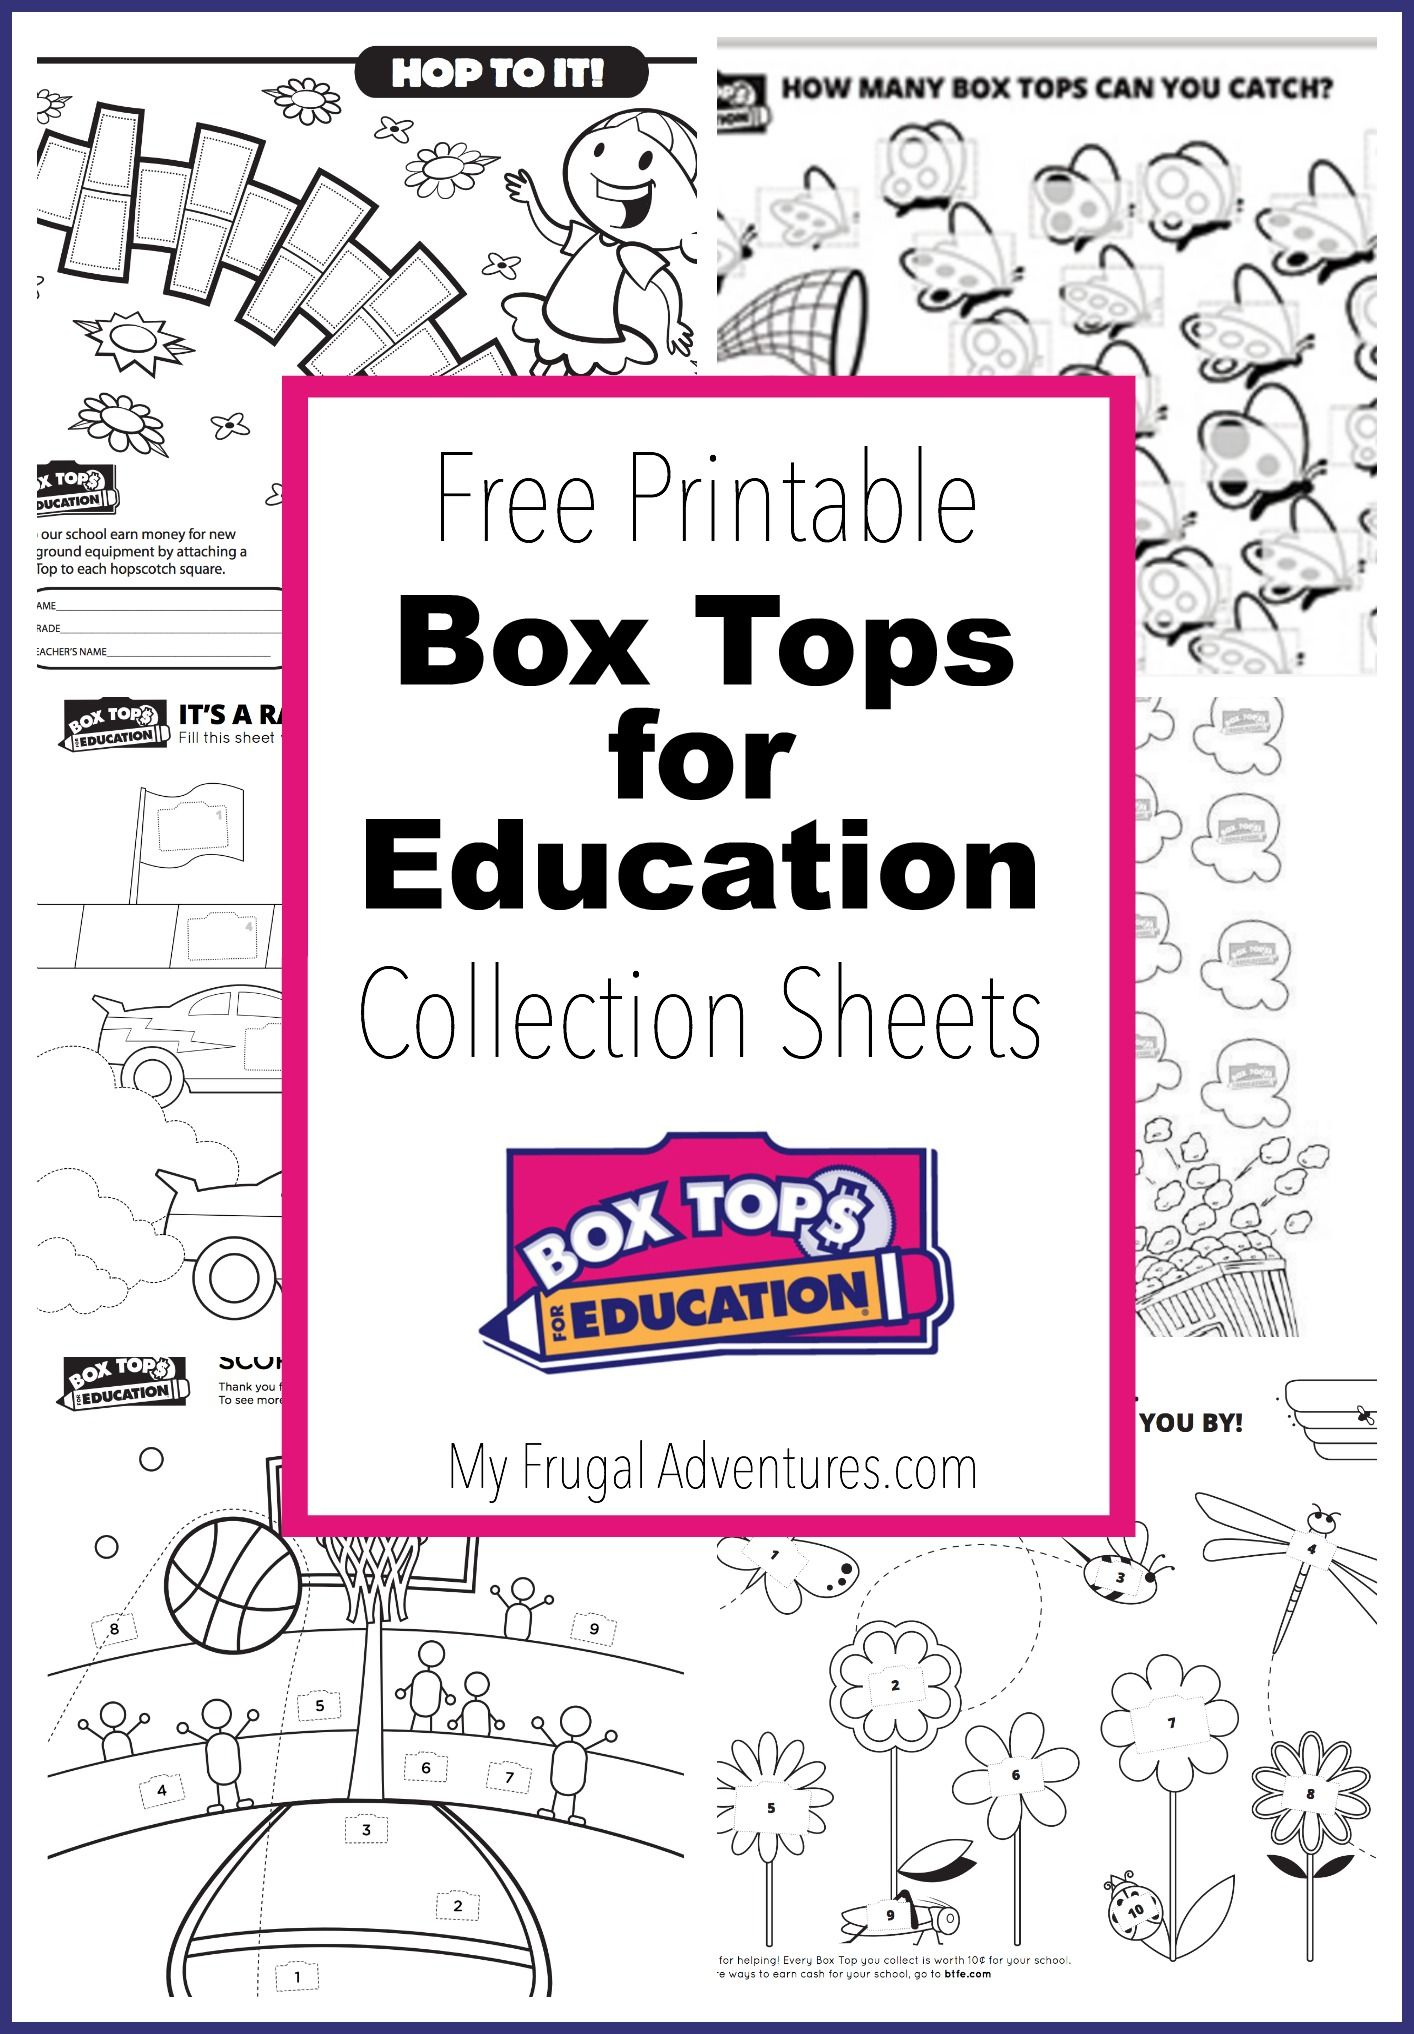 10 Printable Box Tops for Education Collection Sheets | We, Boxes ...